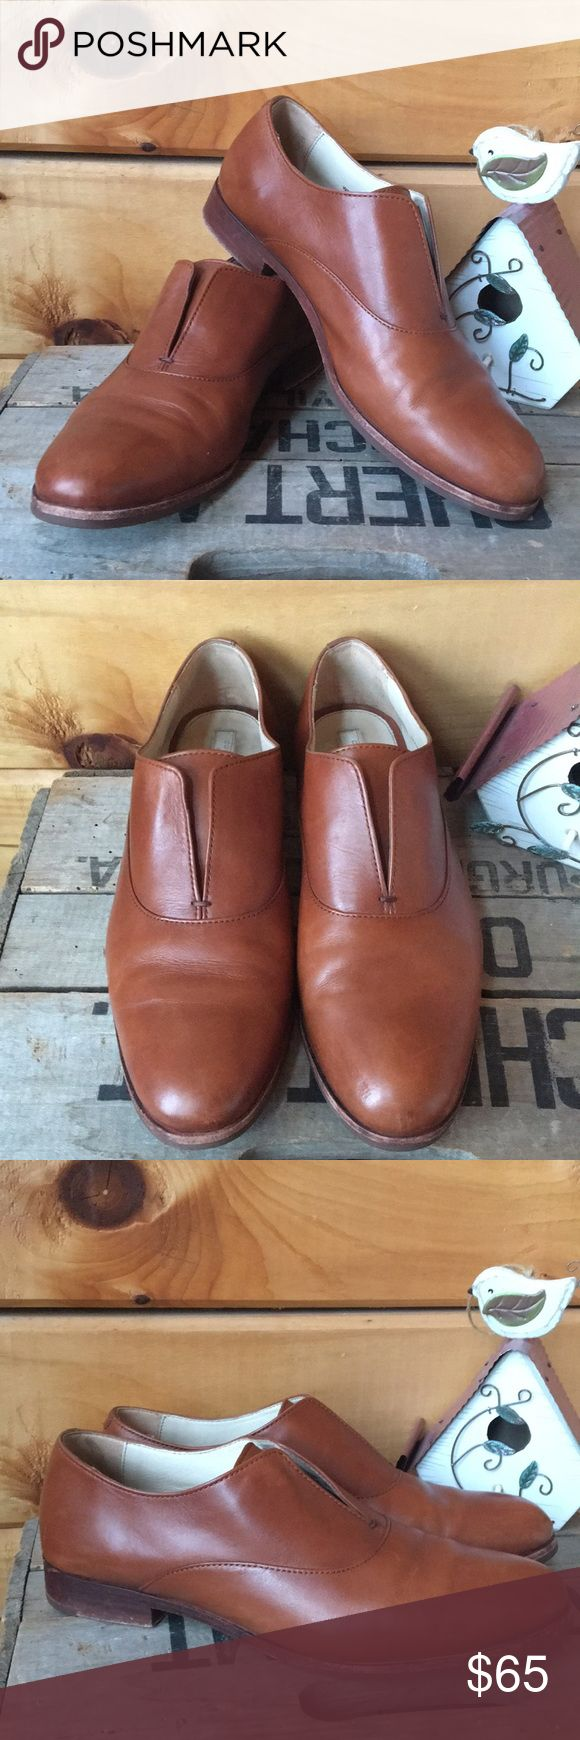 Cole Haan Oxford Brown laceless slip on Oxfords in great used condition. Cole Haan Shoes Flats & Loafers